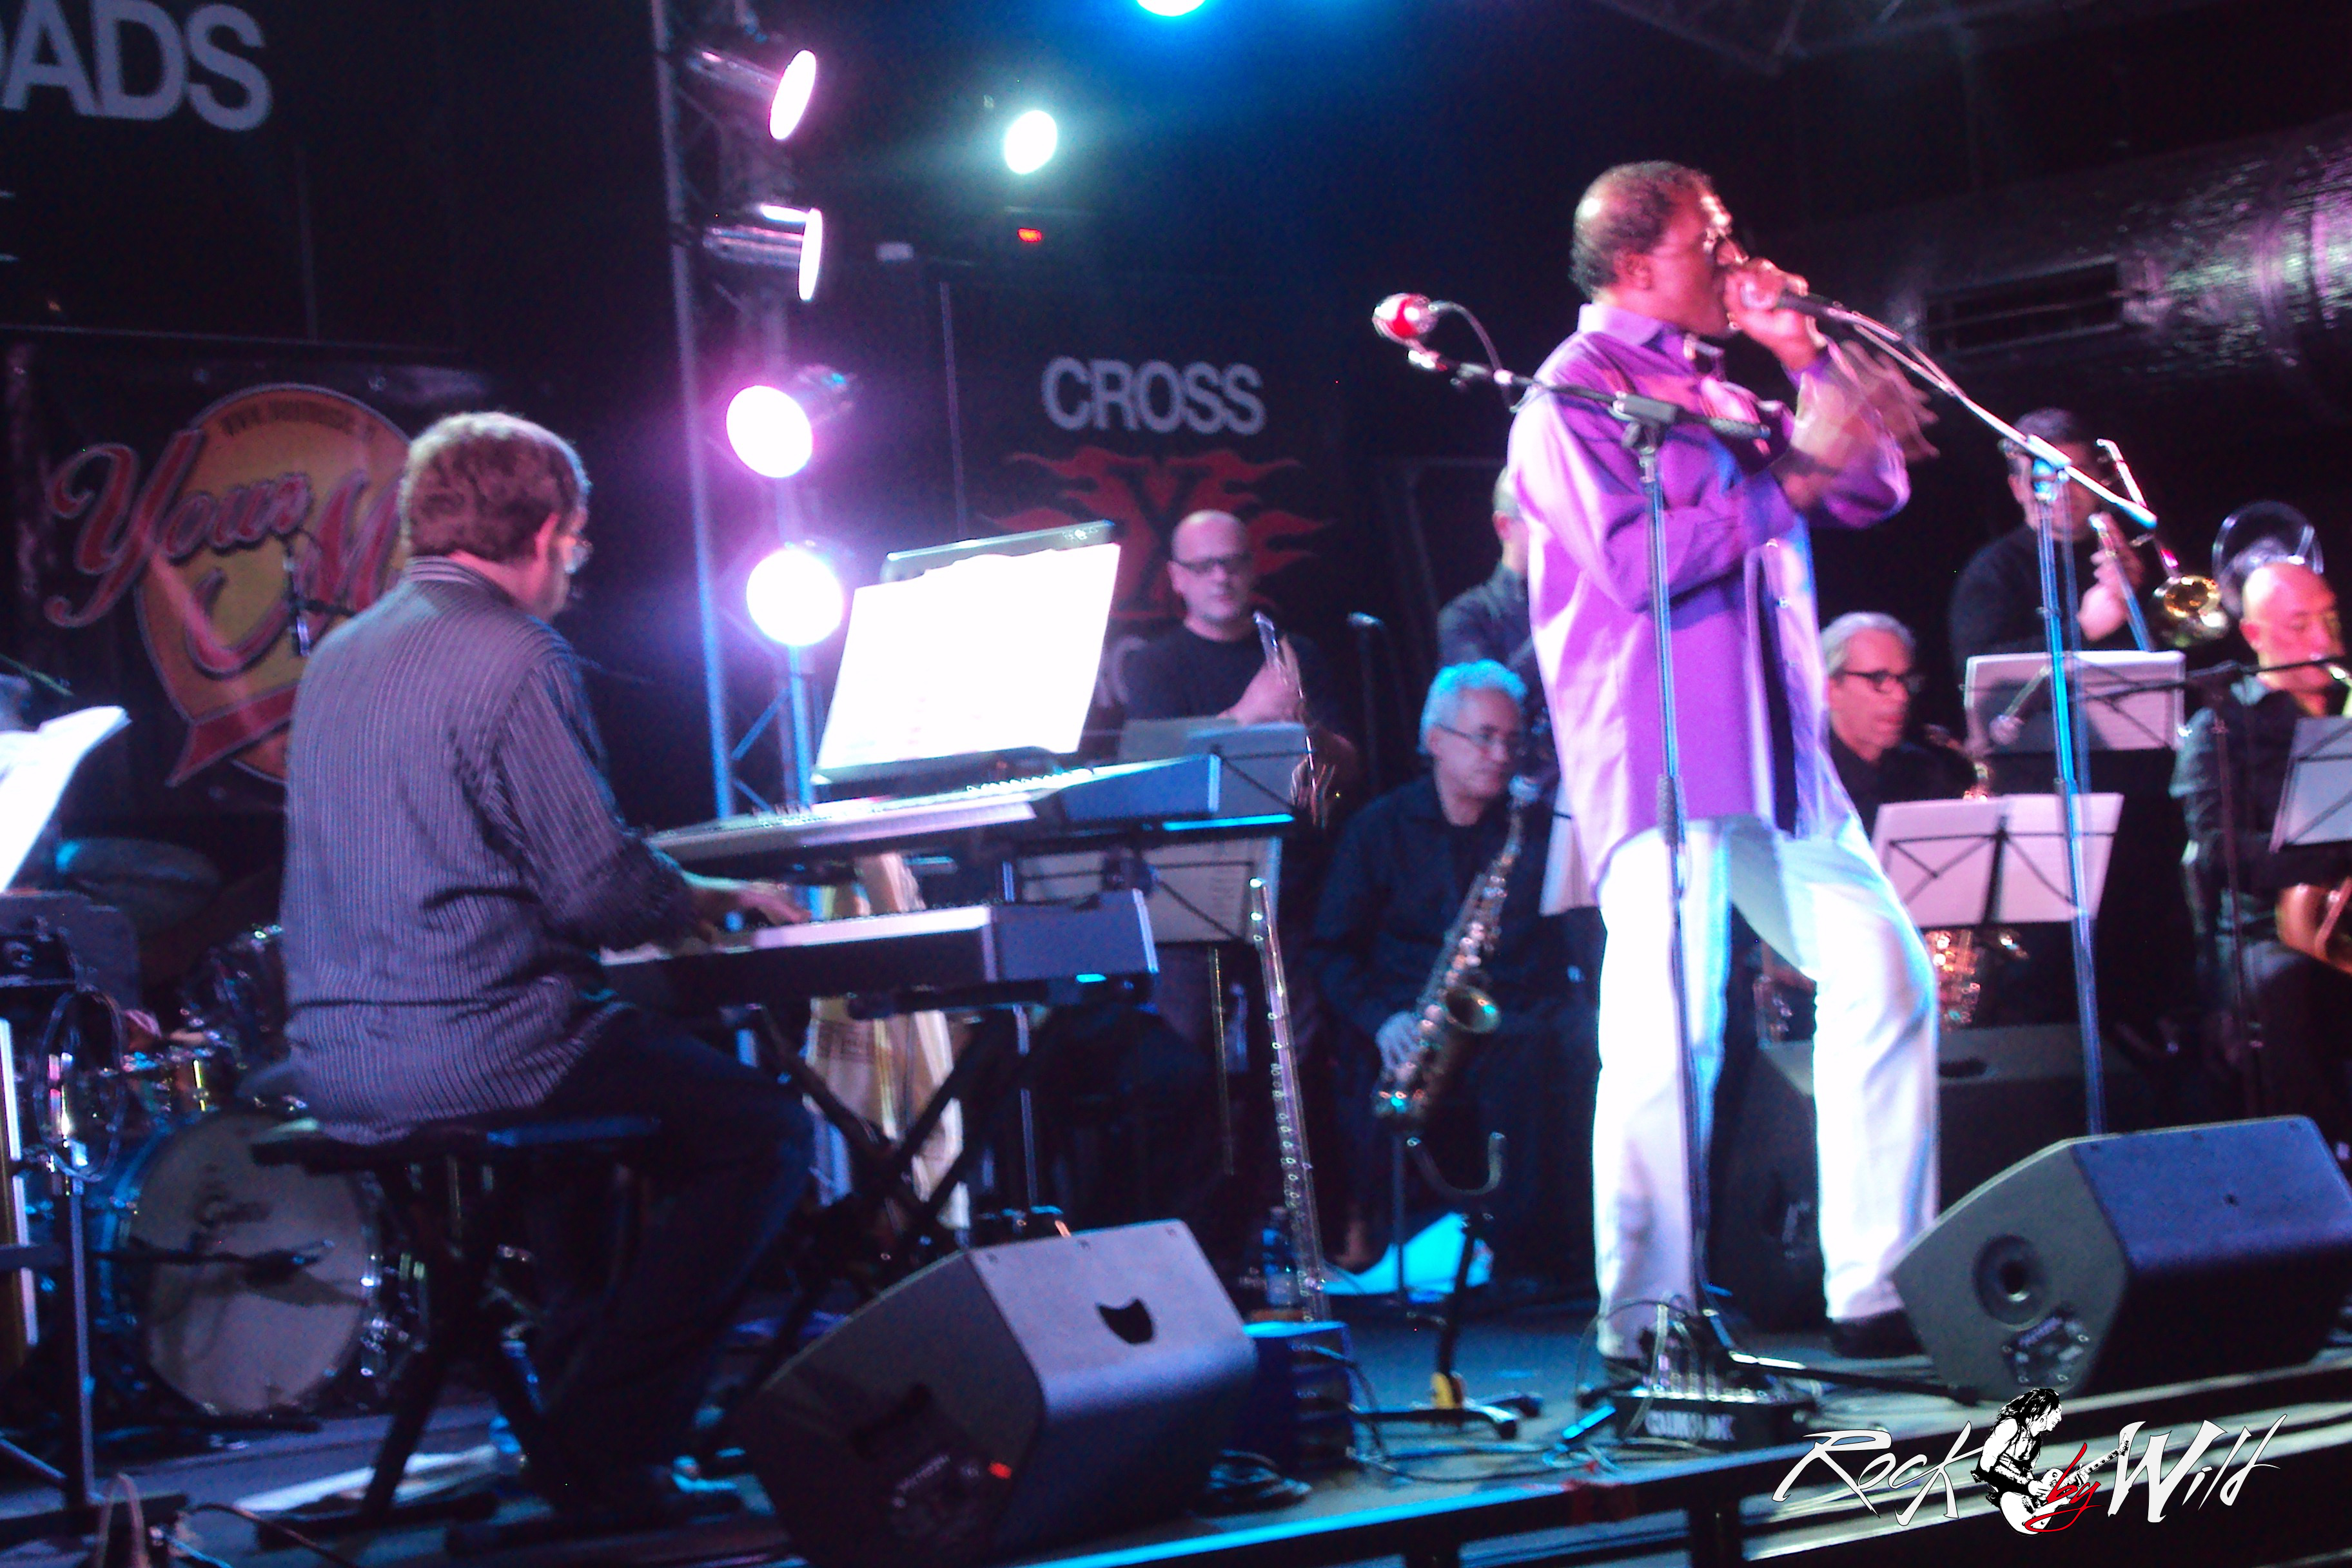 RICCARDO FASSI - TANKIO BAND plays the music of FRANK ZAPPA special guest NAPOLEON MURPHY BROCK @ CROSSroads - 06 11 2015